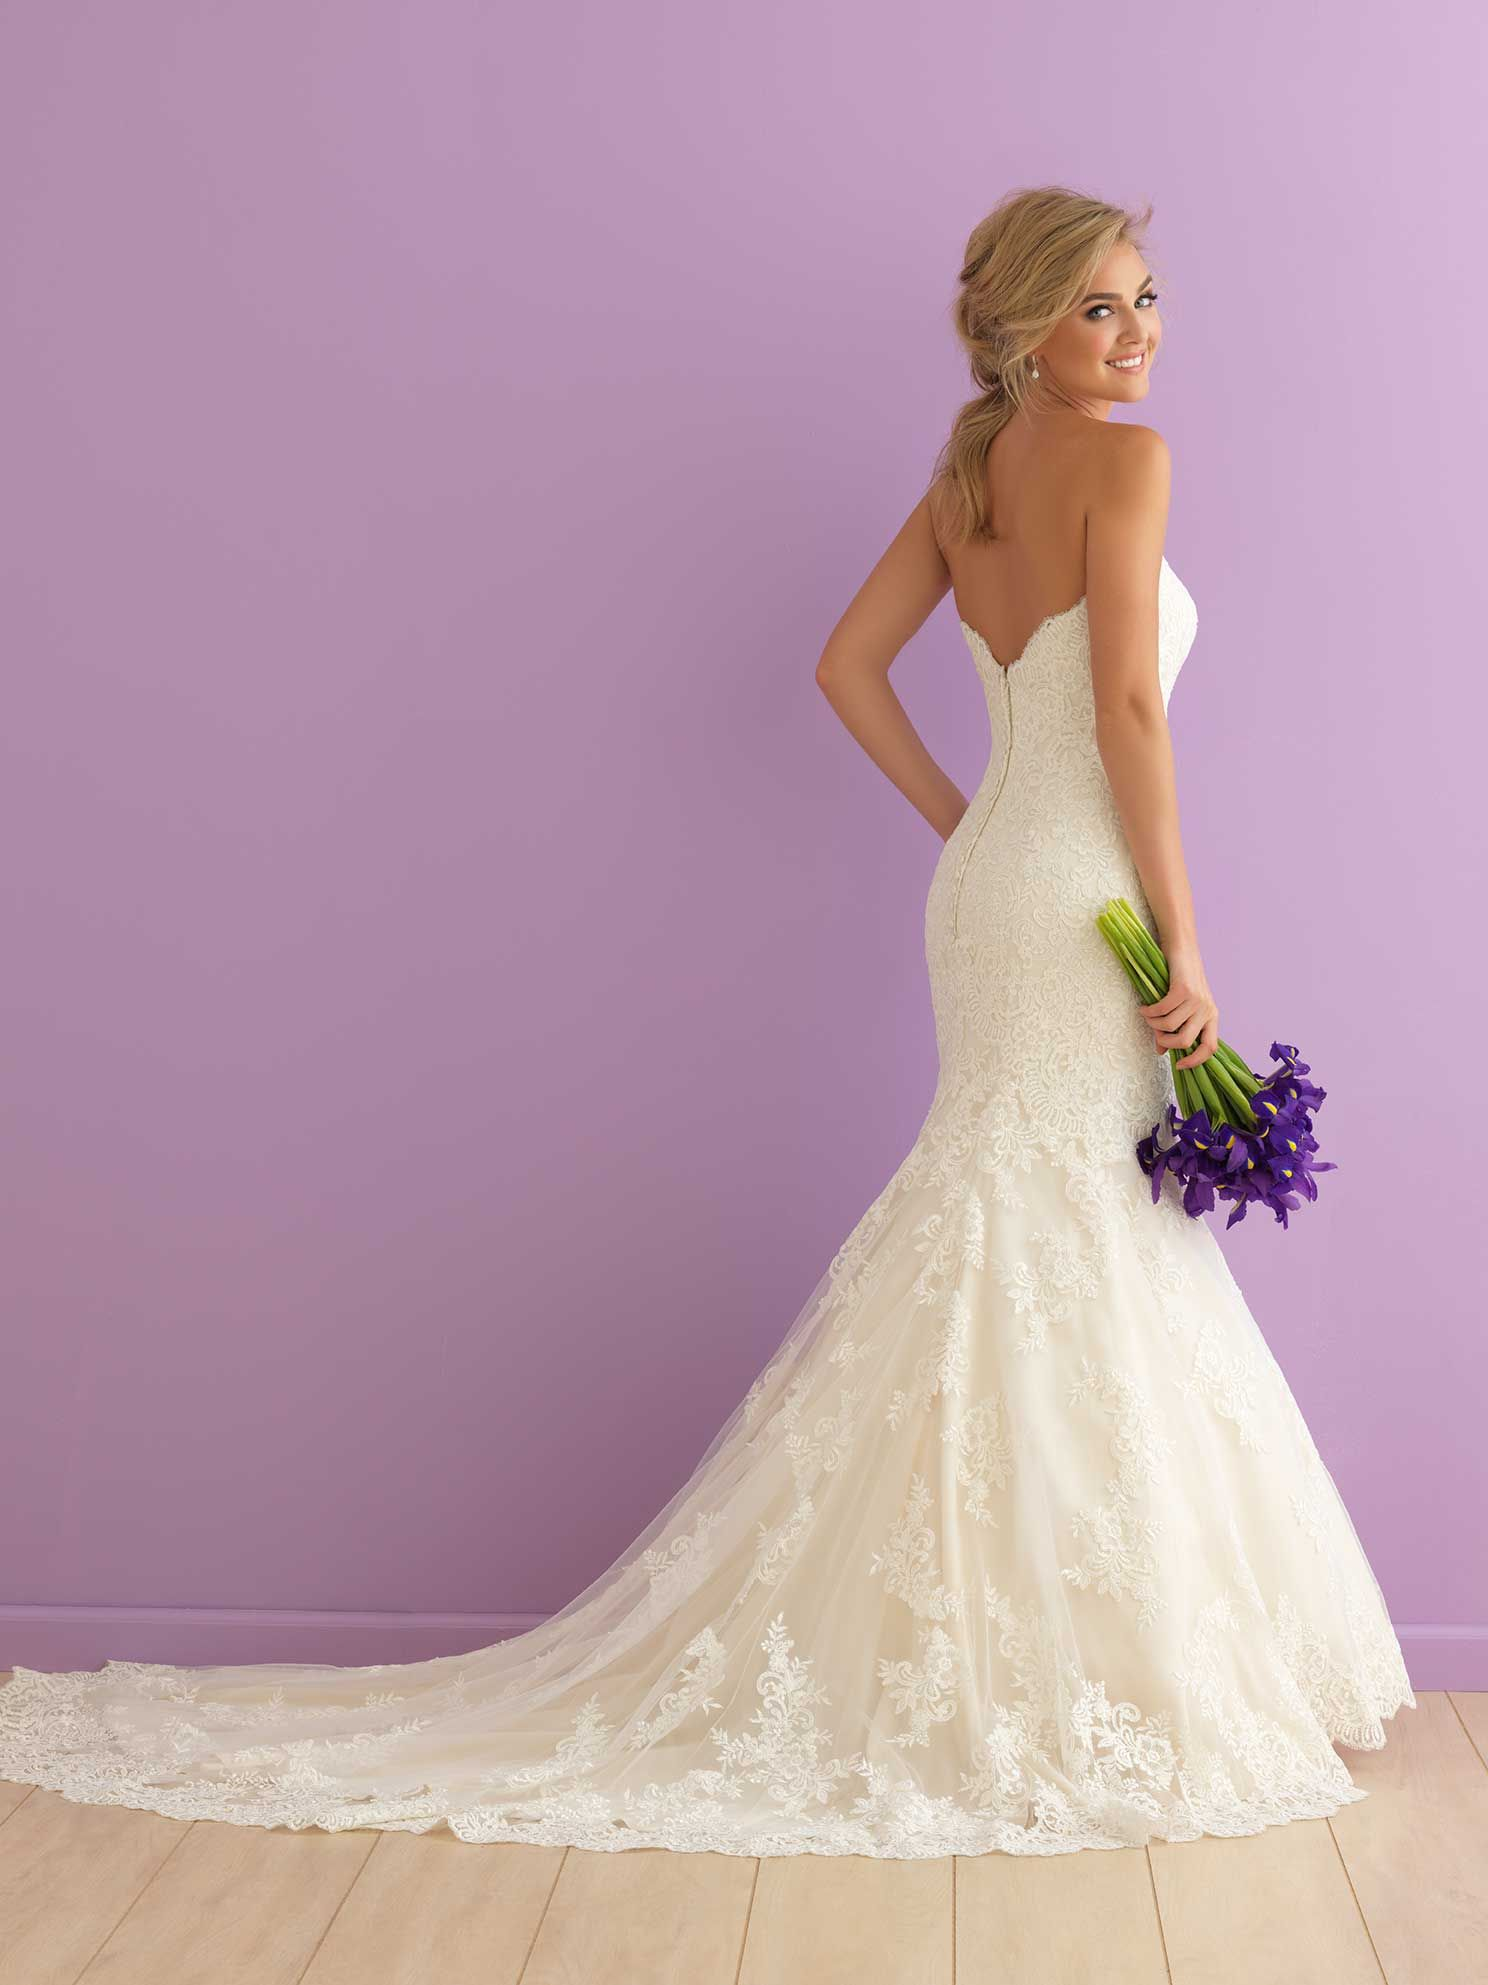 New Bridal Gown Available at Ella Park Bridal   Newburgh, IN   812.853.1800…